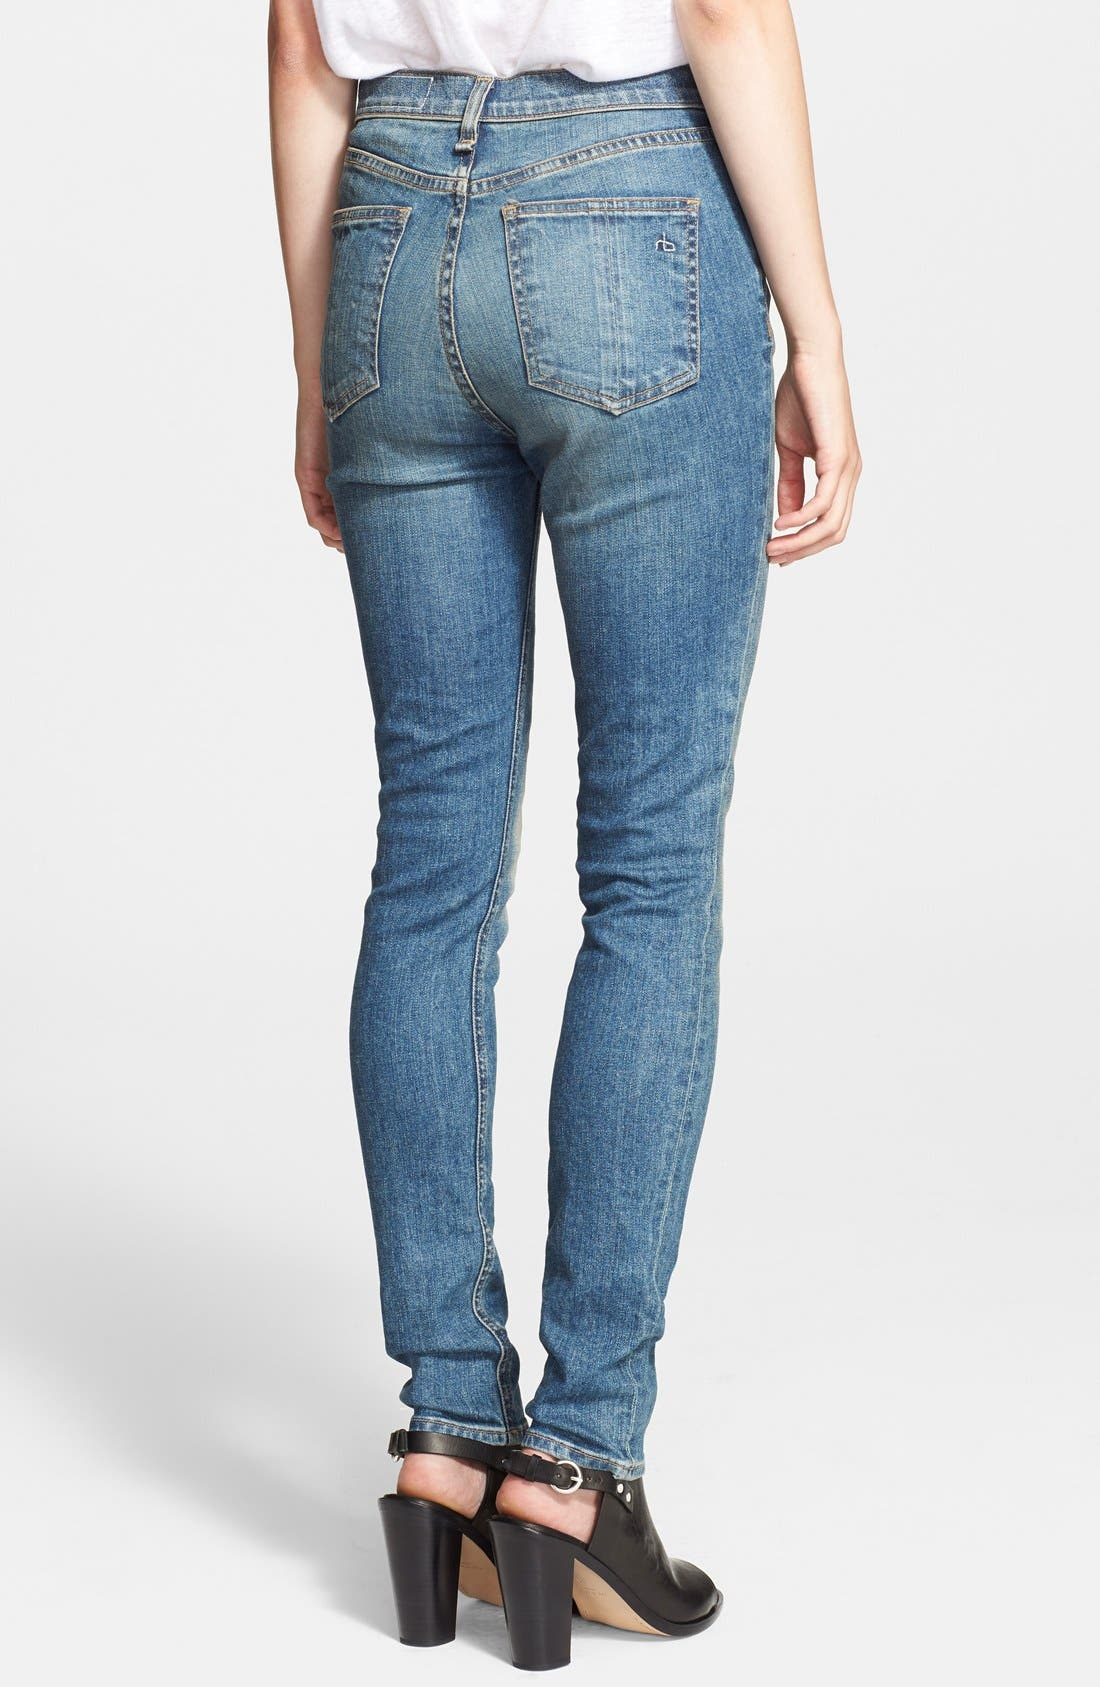 Alternate Image 2  - rag & bone/JEAN 'The Justine' High Rise Jeans (Surf)